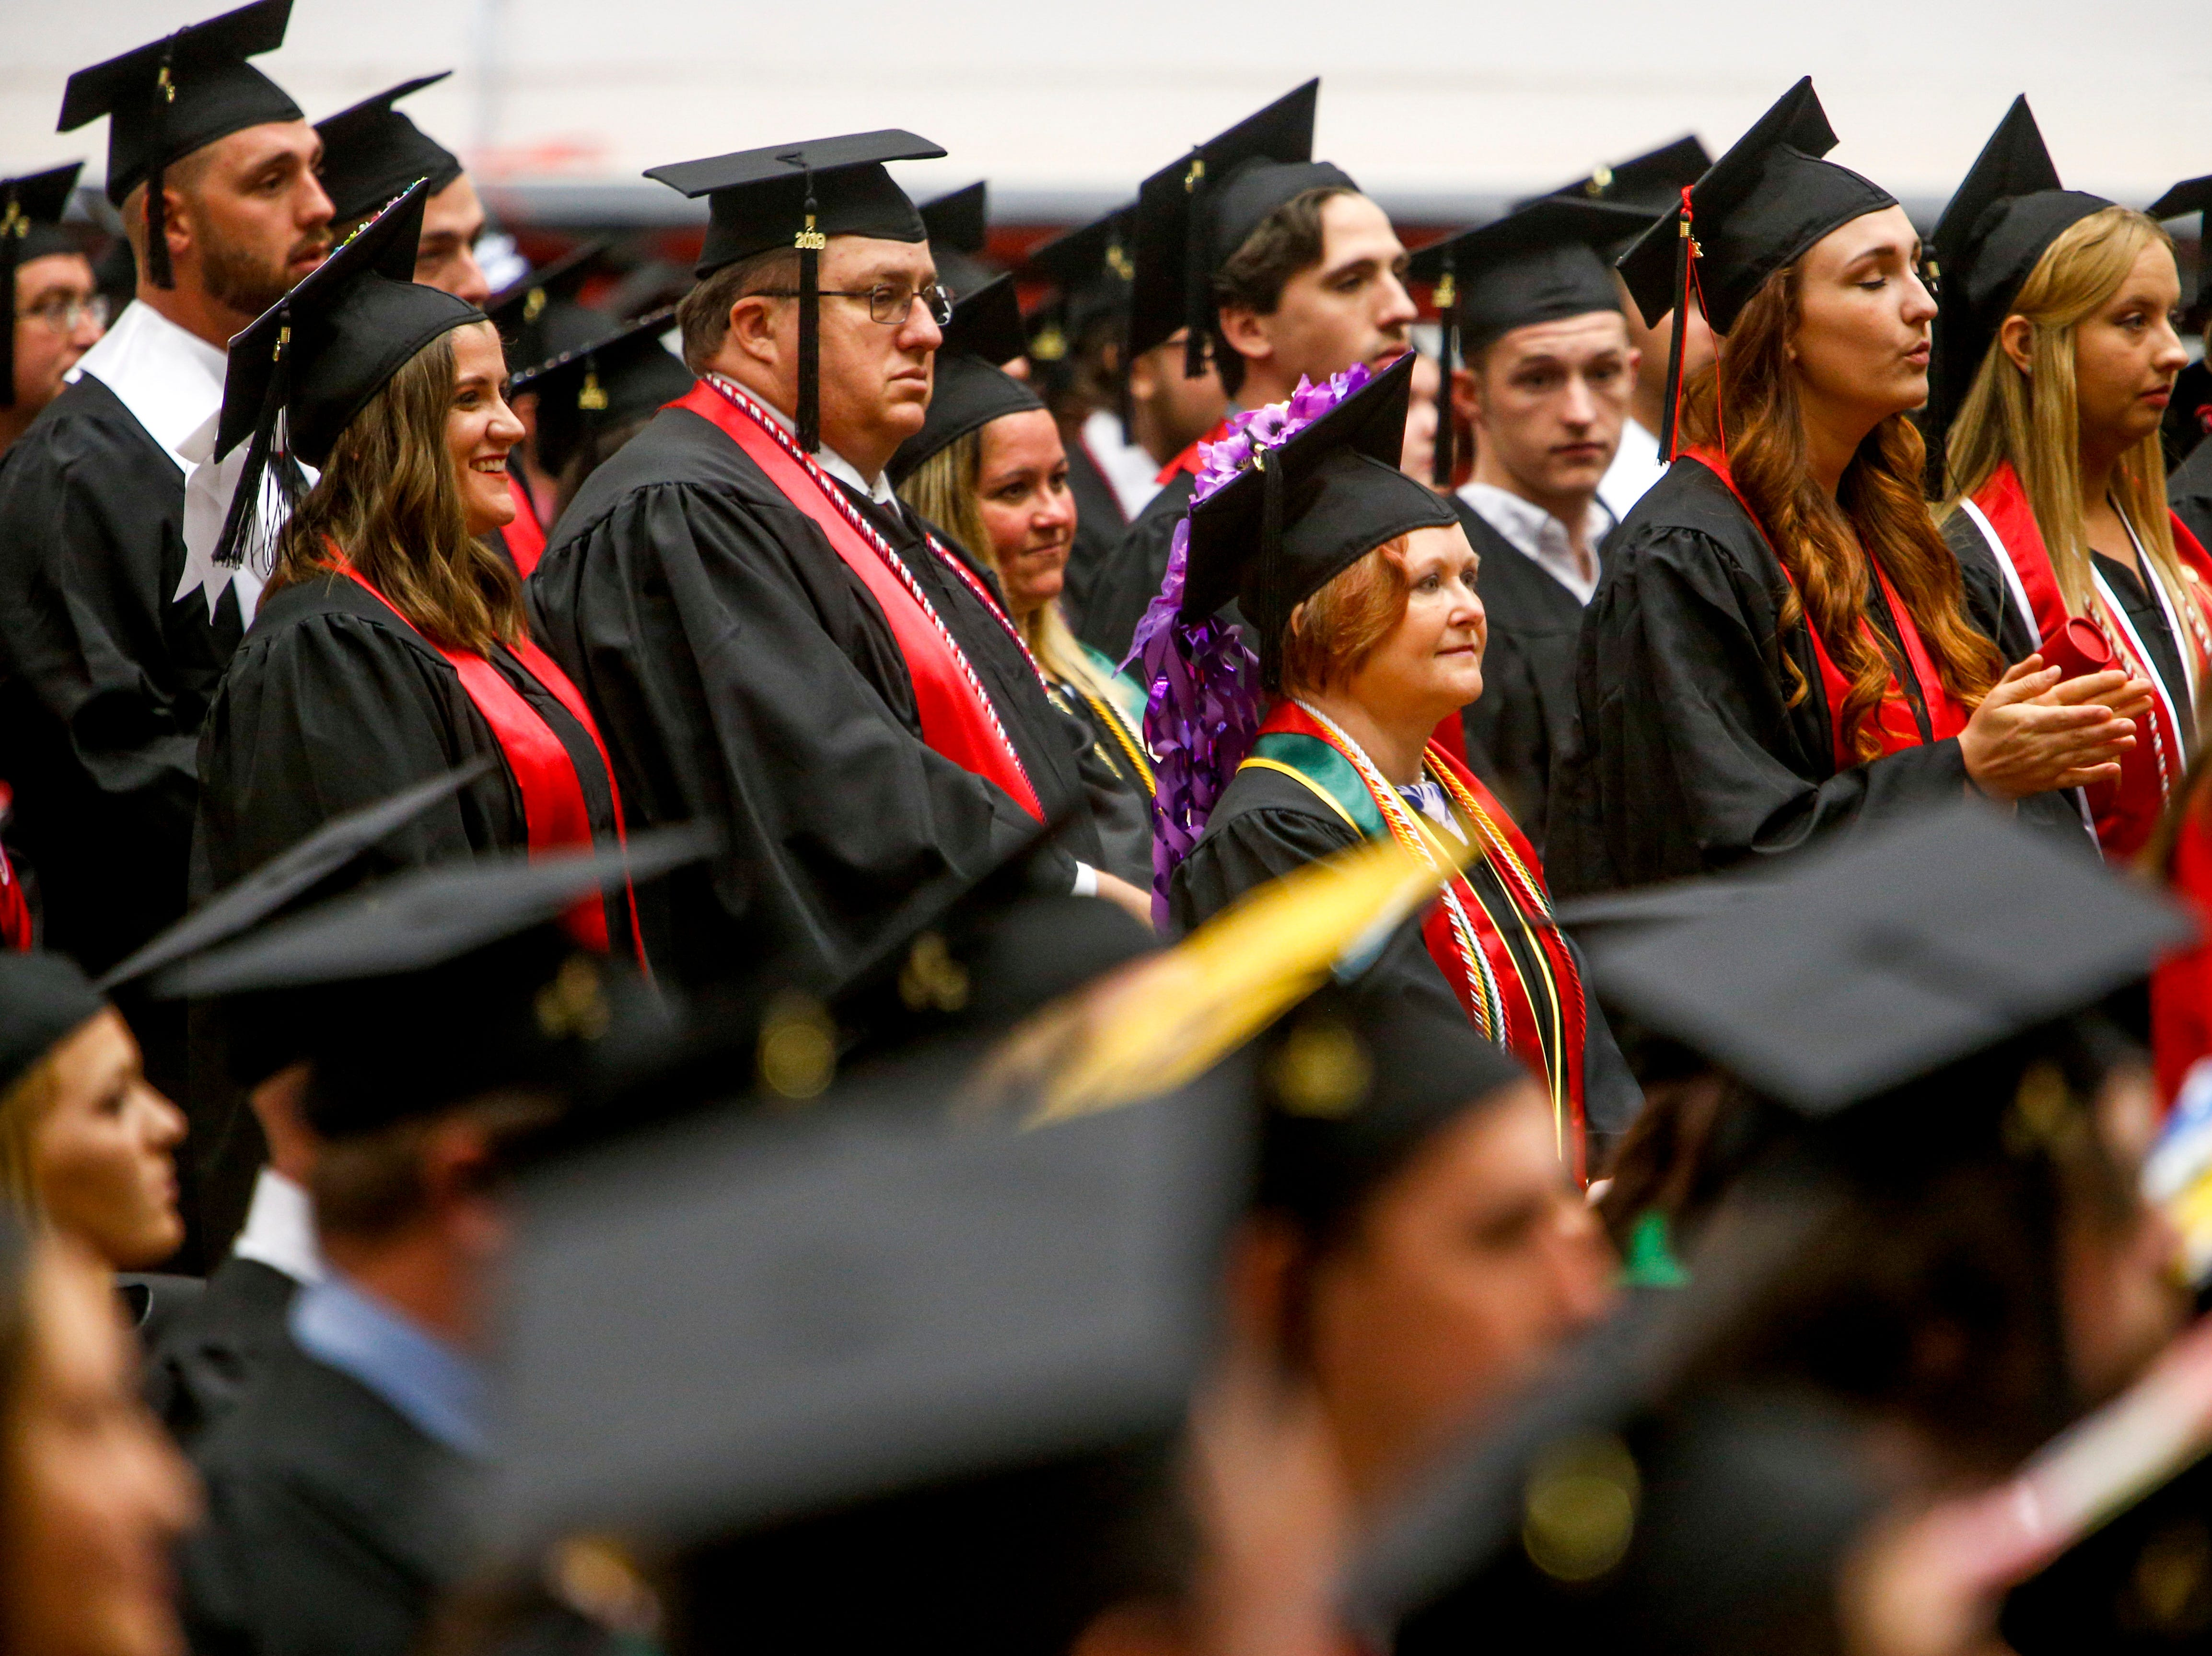 Students stand before walking and receiving their diplomas at the Austin Peay spring commencement ceremony 2019 for College of Business and College of STEM at Winfield Dunn Center in Clarksville, Tenn., on Friday, May 3, 2019.